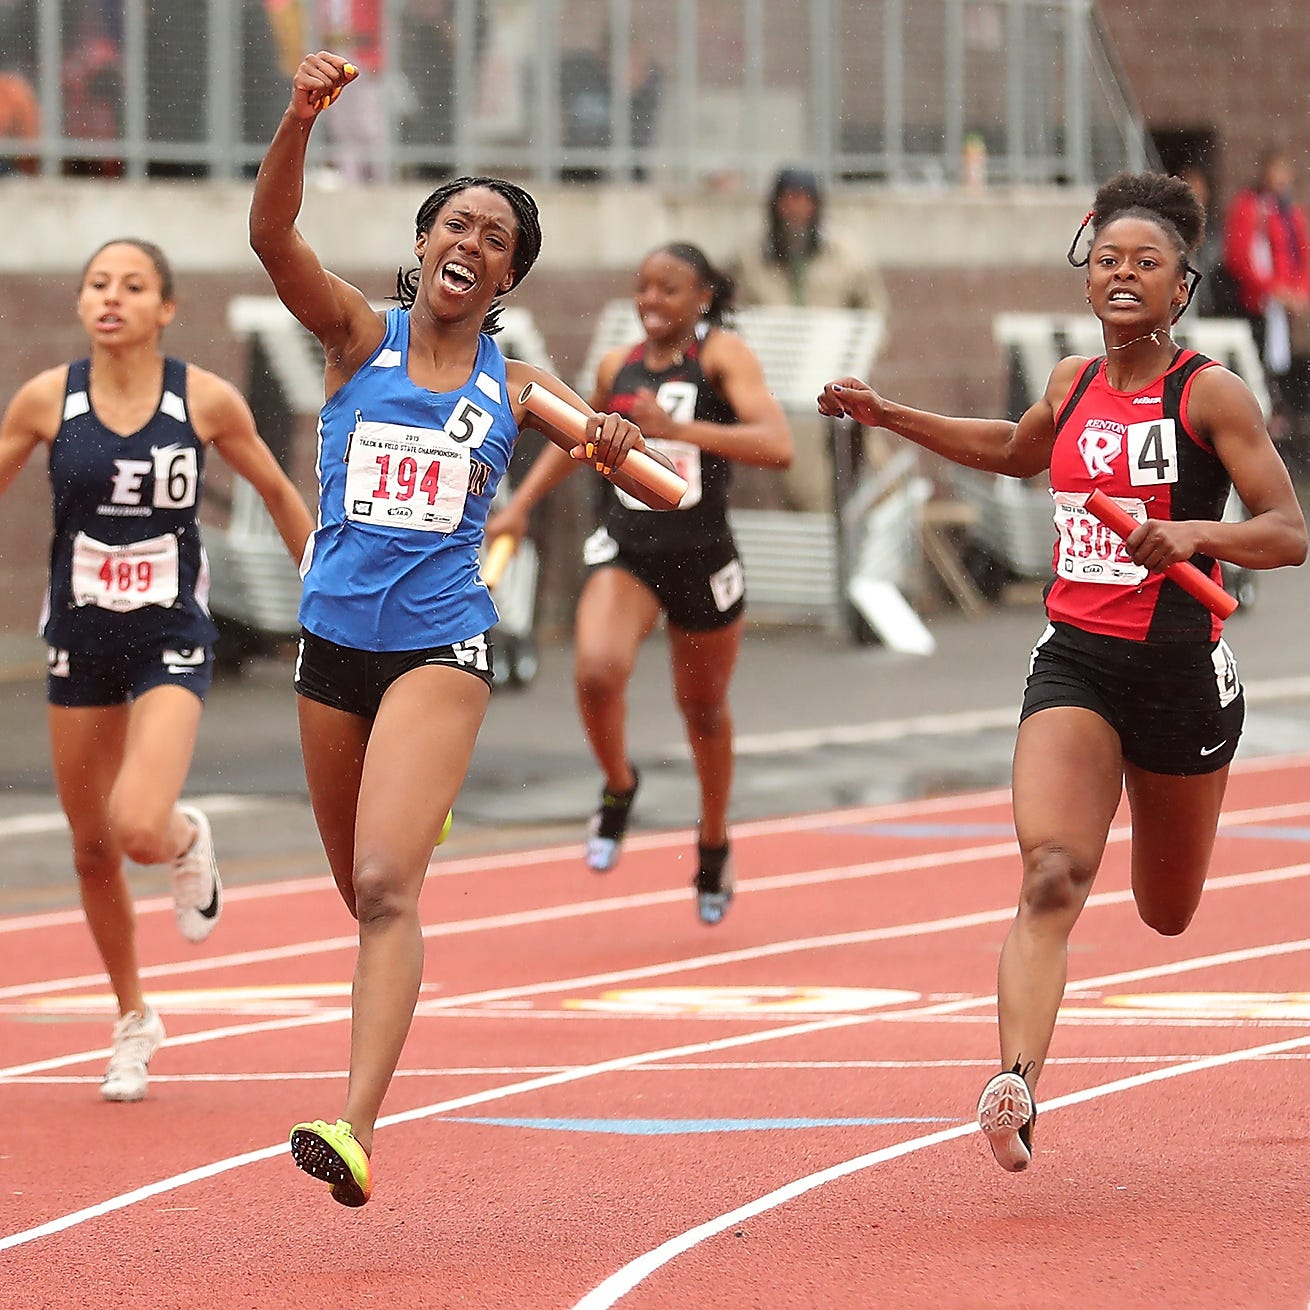 Relay teams from Bremerton and NK, CK jumper add state track and field titles